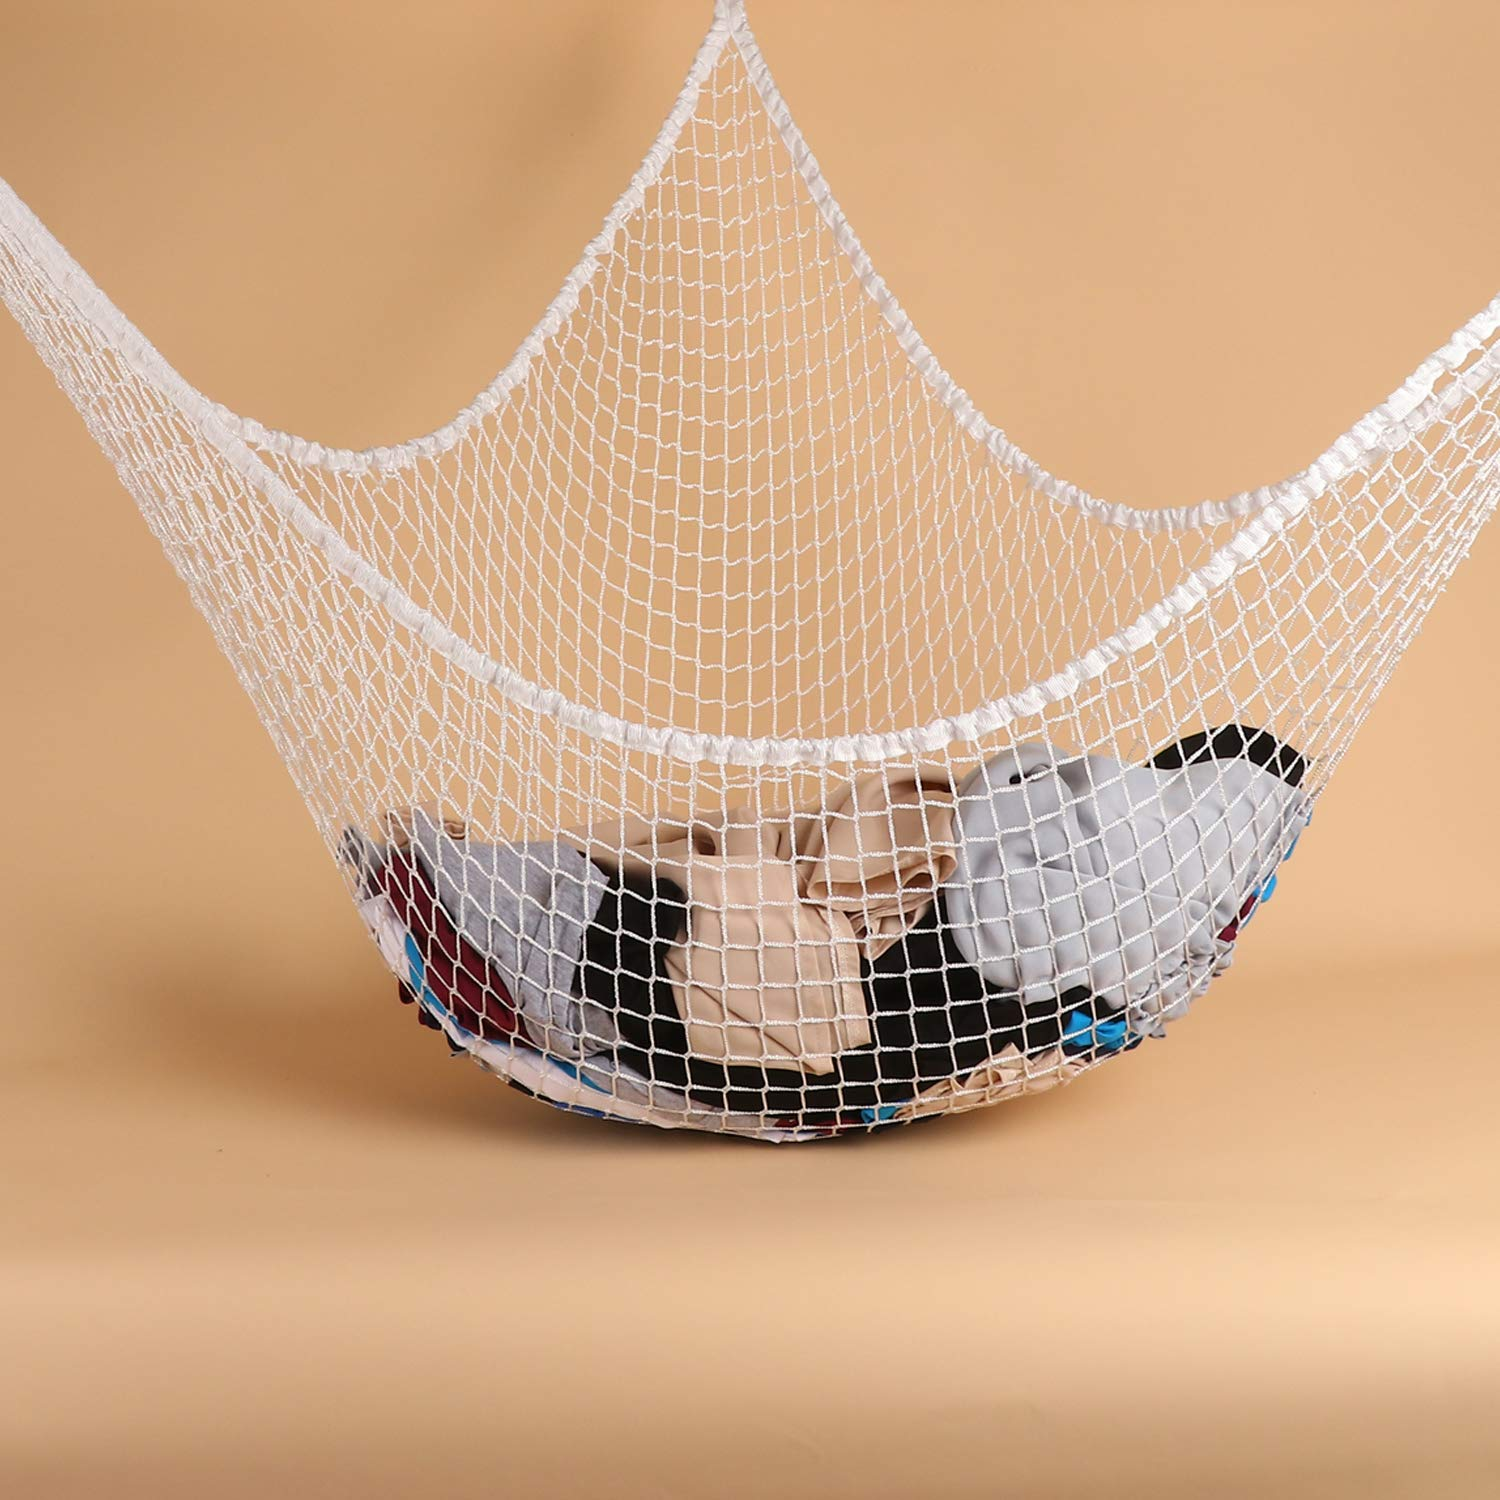 Toy Hammock Storage Net White LXUNYI Mesh Toy Net Holder Jumbo Wall Corner Giant Baby Kids Children Stuff animals Hammocks Net Organizer for Bedroom Stuffed Animal Hammock